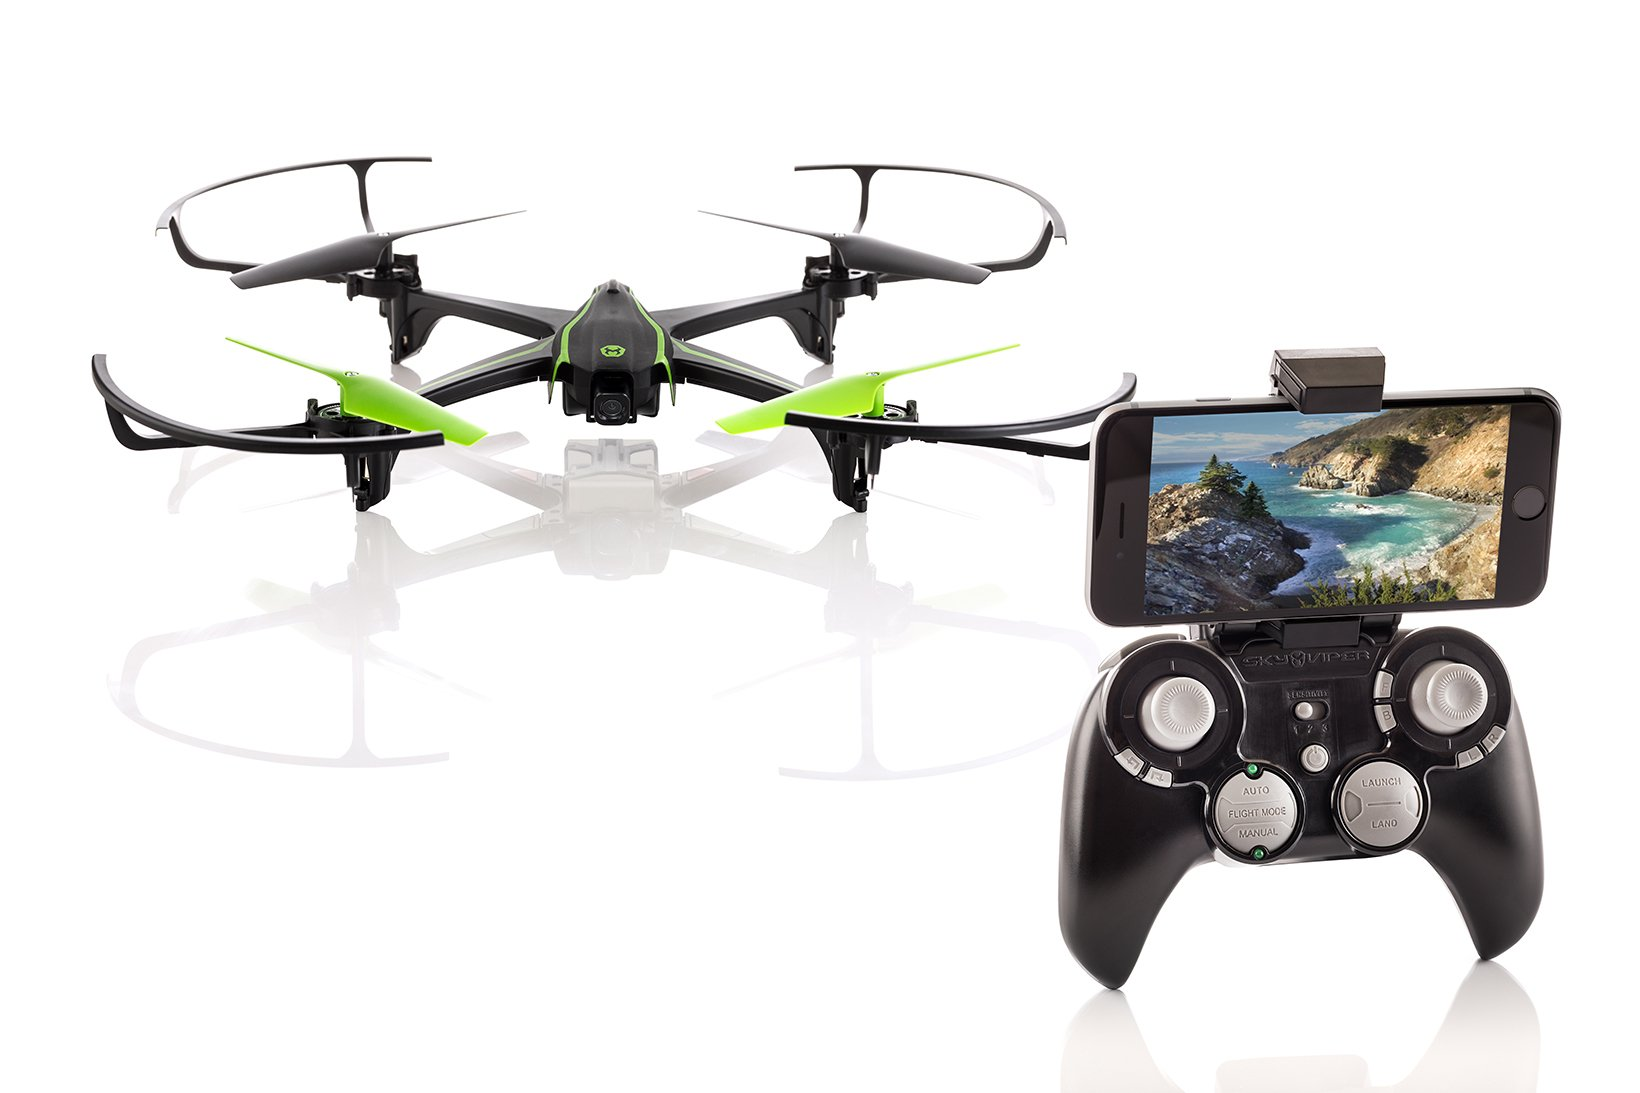 Sky Viper v2450HD Streaming Drone with Flight Assist & 2X Improved Flight Range - 2017 Edition by Sky Viper (Image #2)